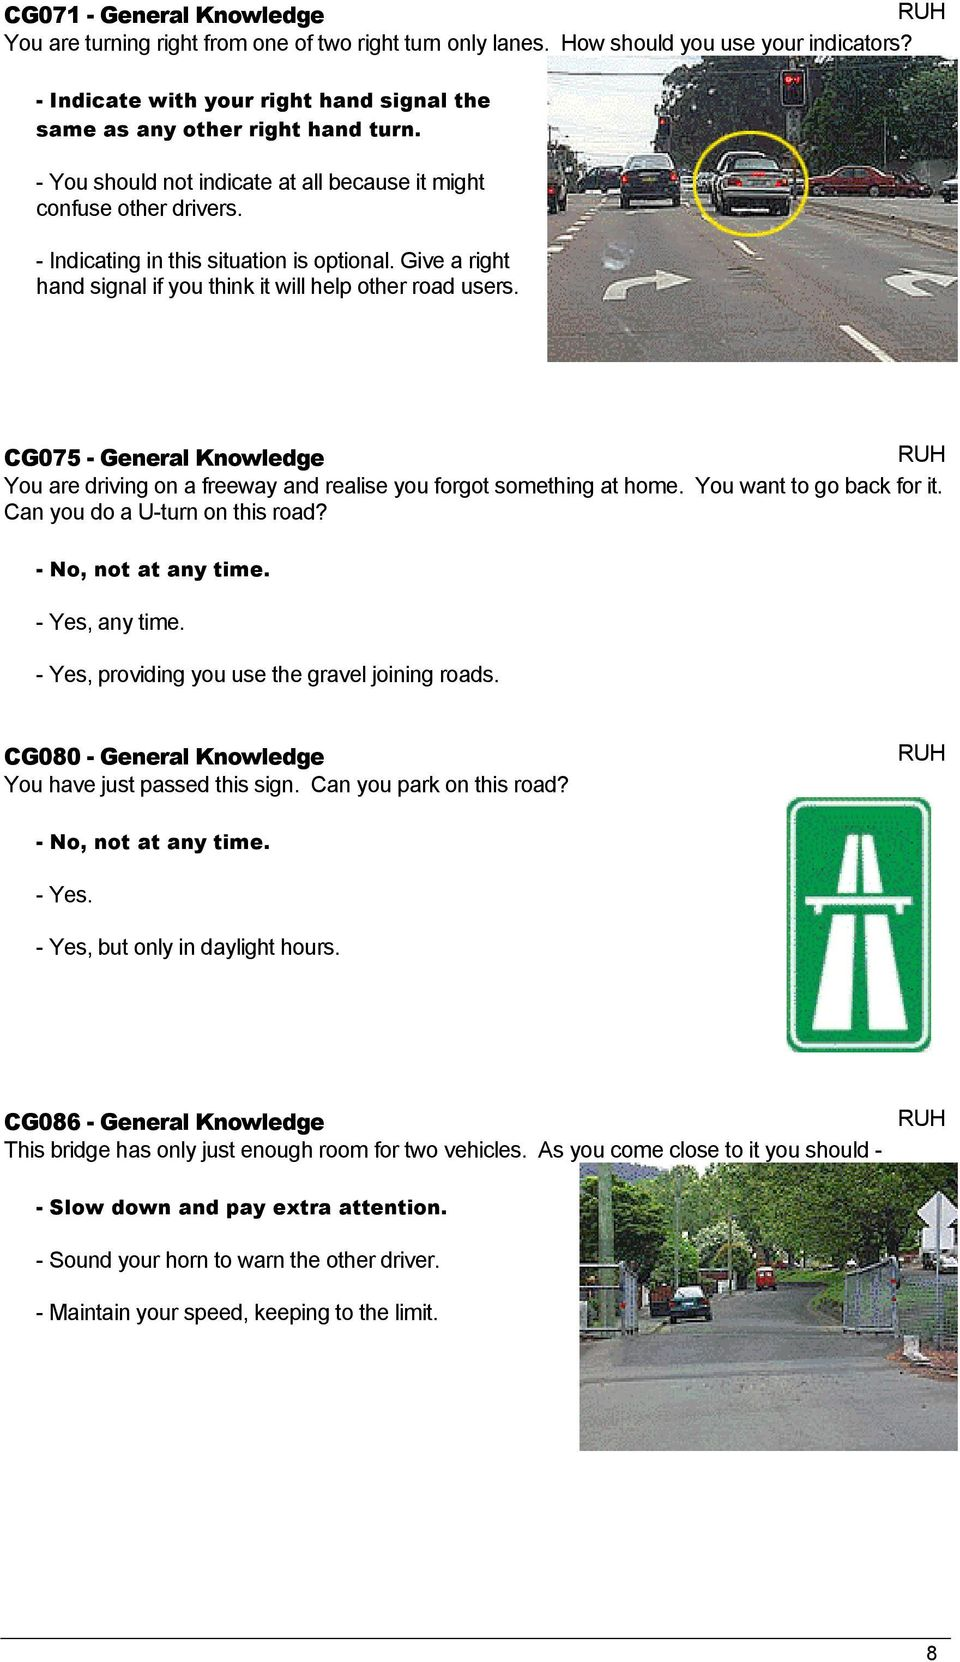 CG075 - General Knowledge You are driving on a freeway and realise you forgot something at home. You want to go back for it. Can you do a U-turn on this road? - No, not at any time. - Yes, any time.